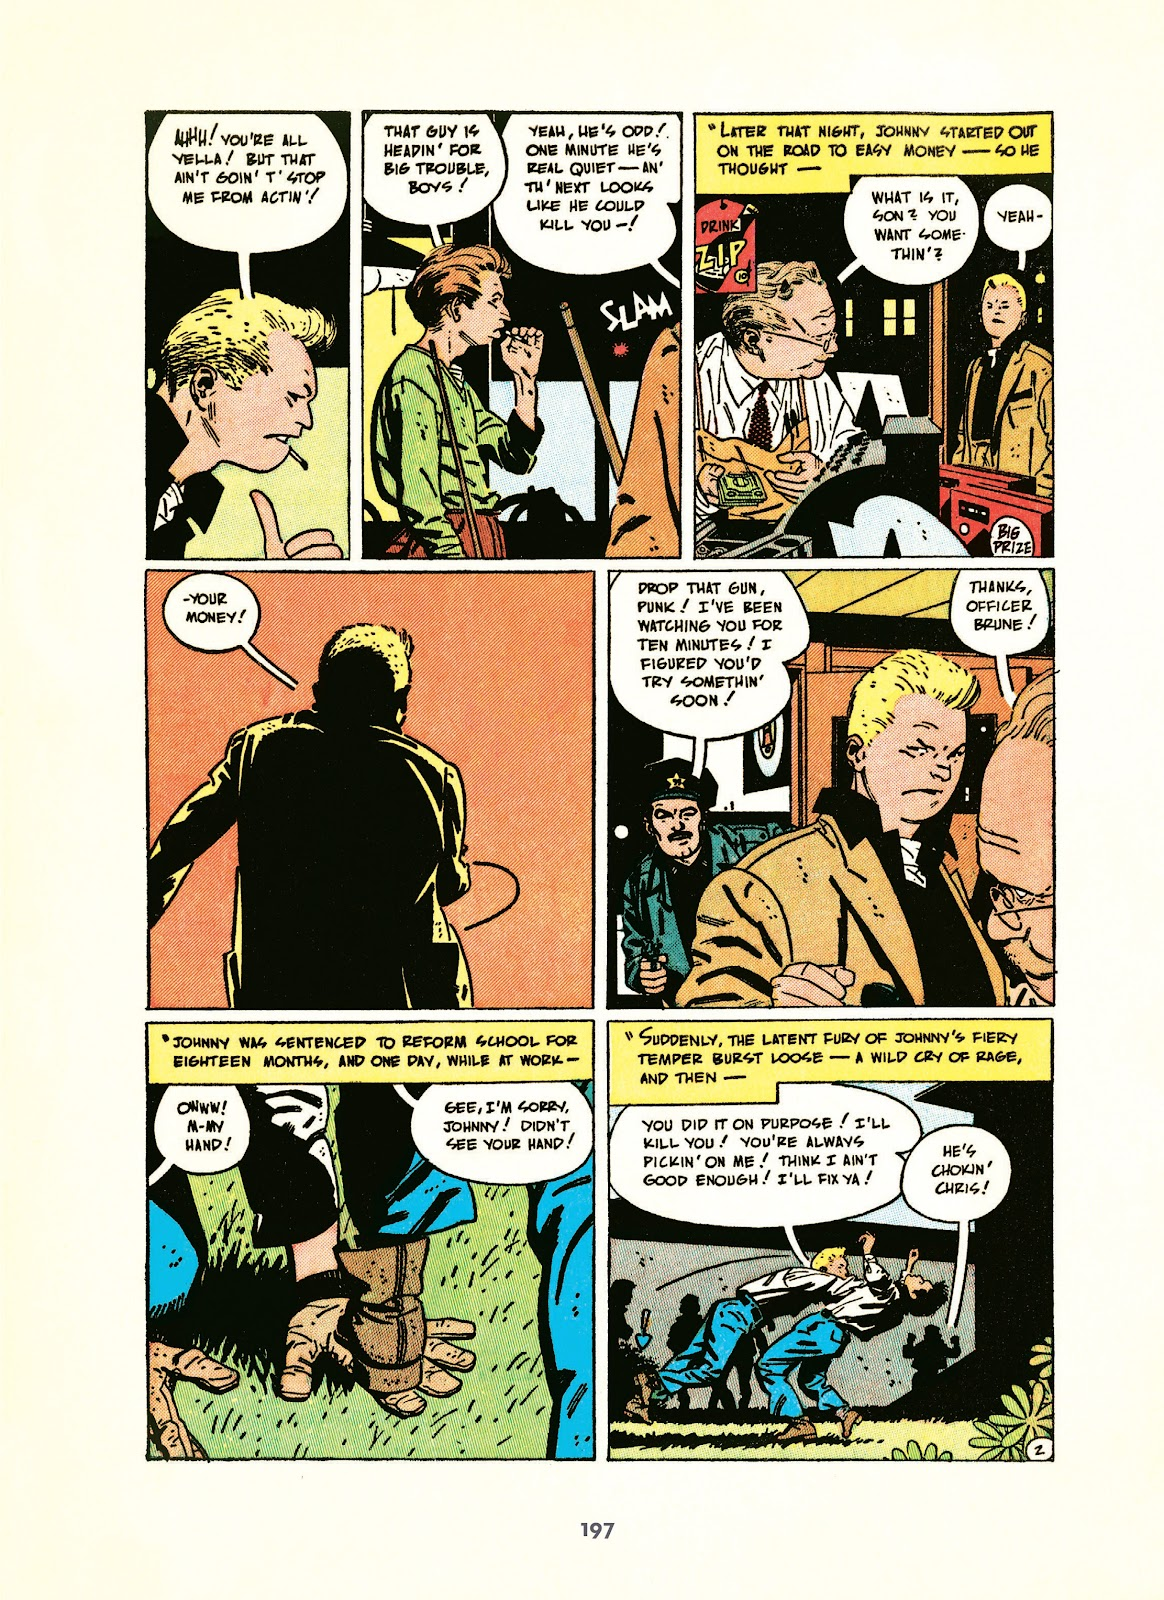 Read online Setting the Standard: Comics by Alex Toth 1952-1954 comic -  Issue # TPB (Part 2) - 98